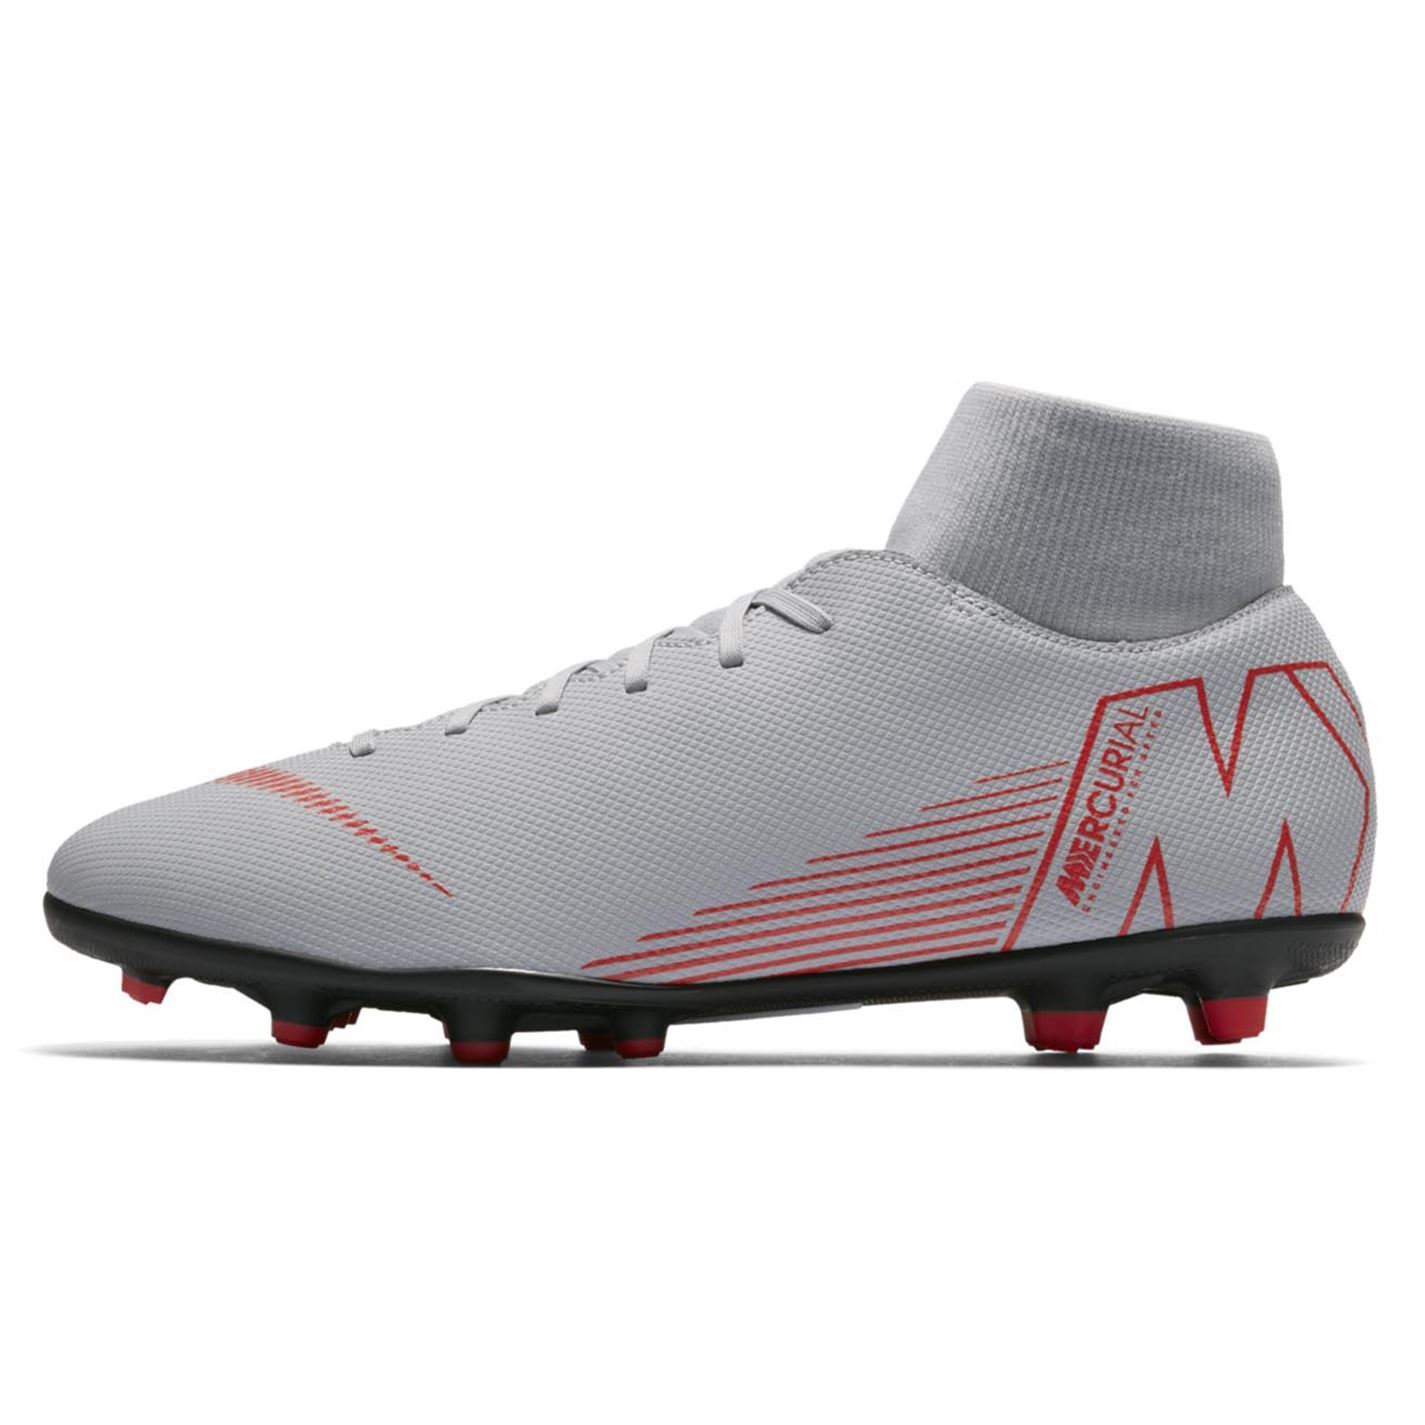 21502989804 Nike Mercurial Superfly Club DF FG Firm Ground Football Boots Mens ...